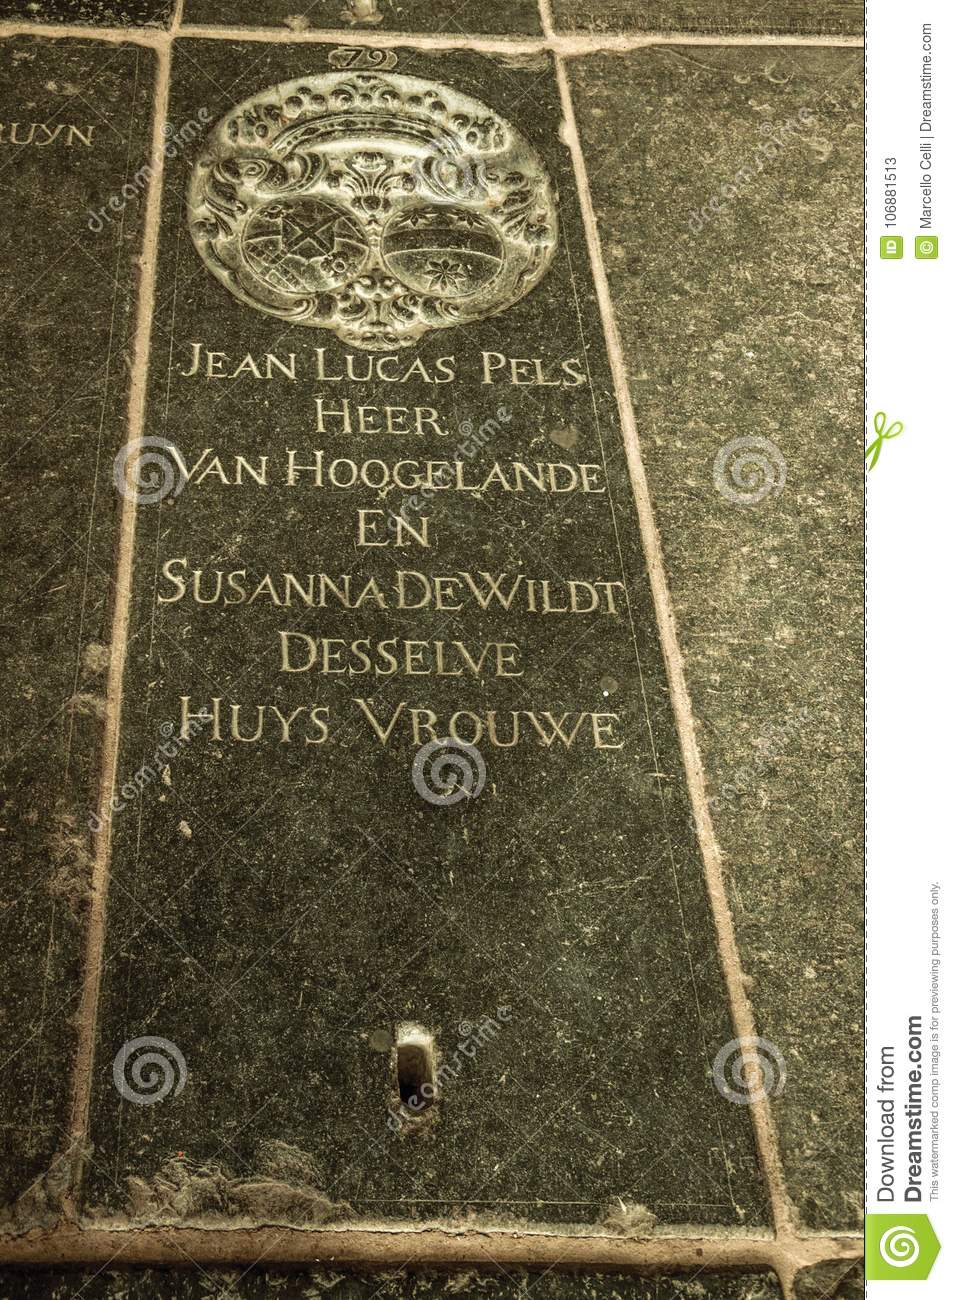 Gravestone With The Dead's Name And Coat Of Arms On The